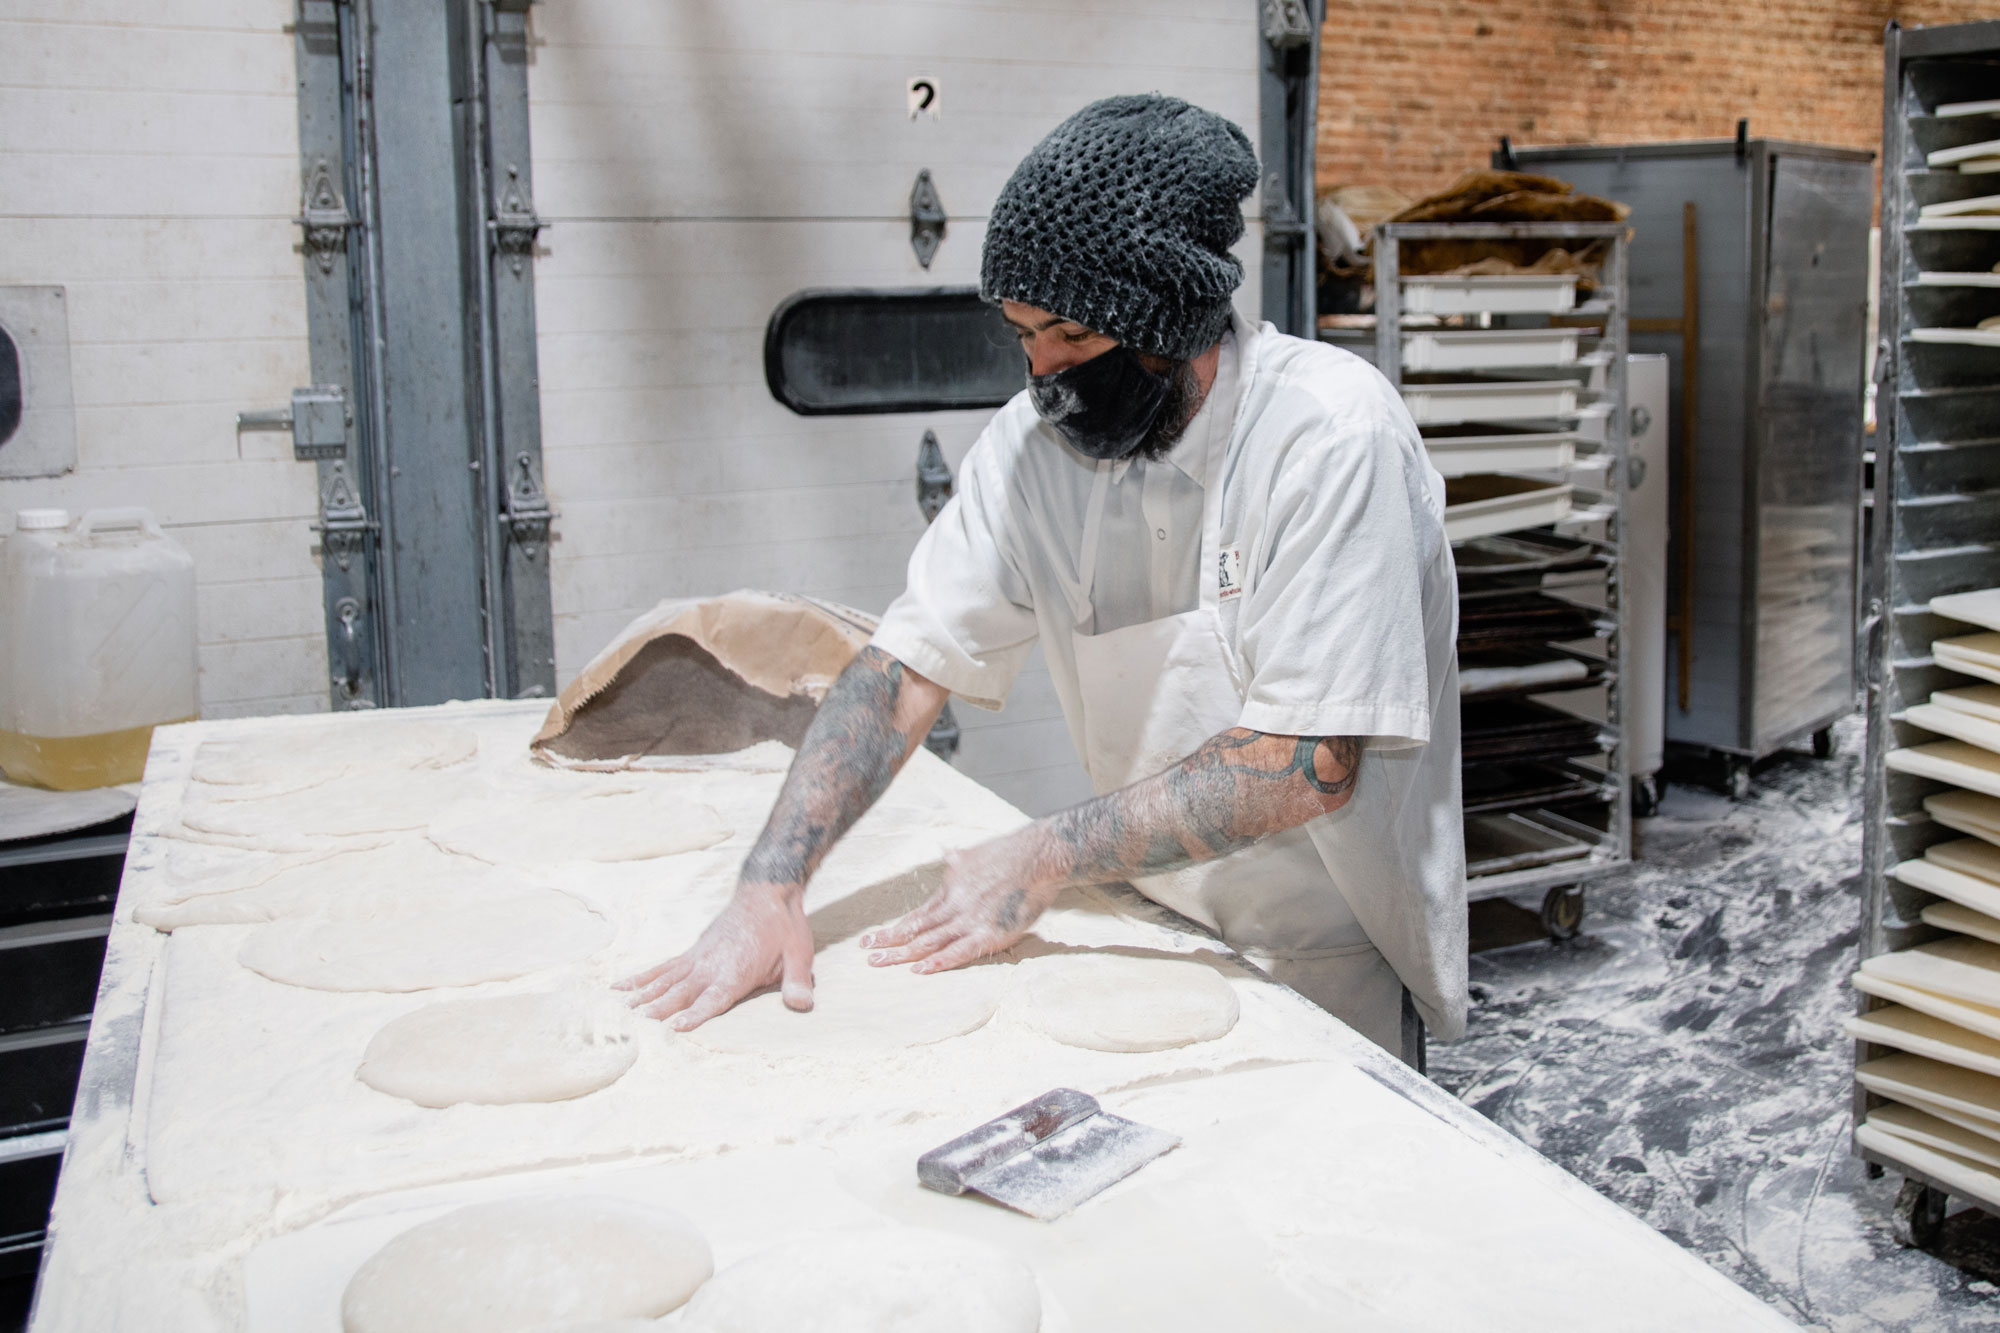 A person pressing against mounds of dough.